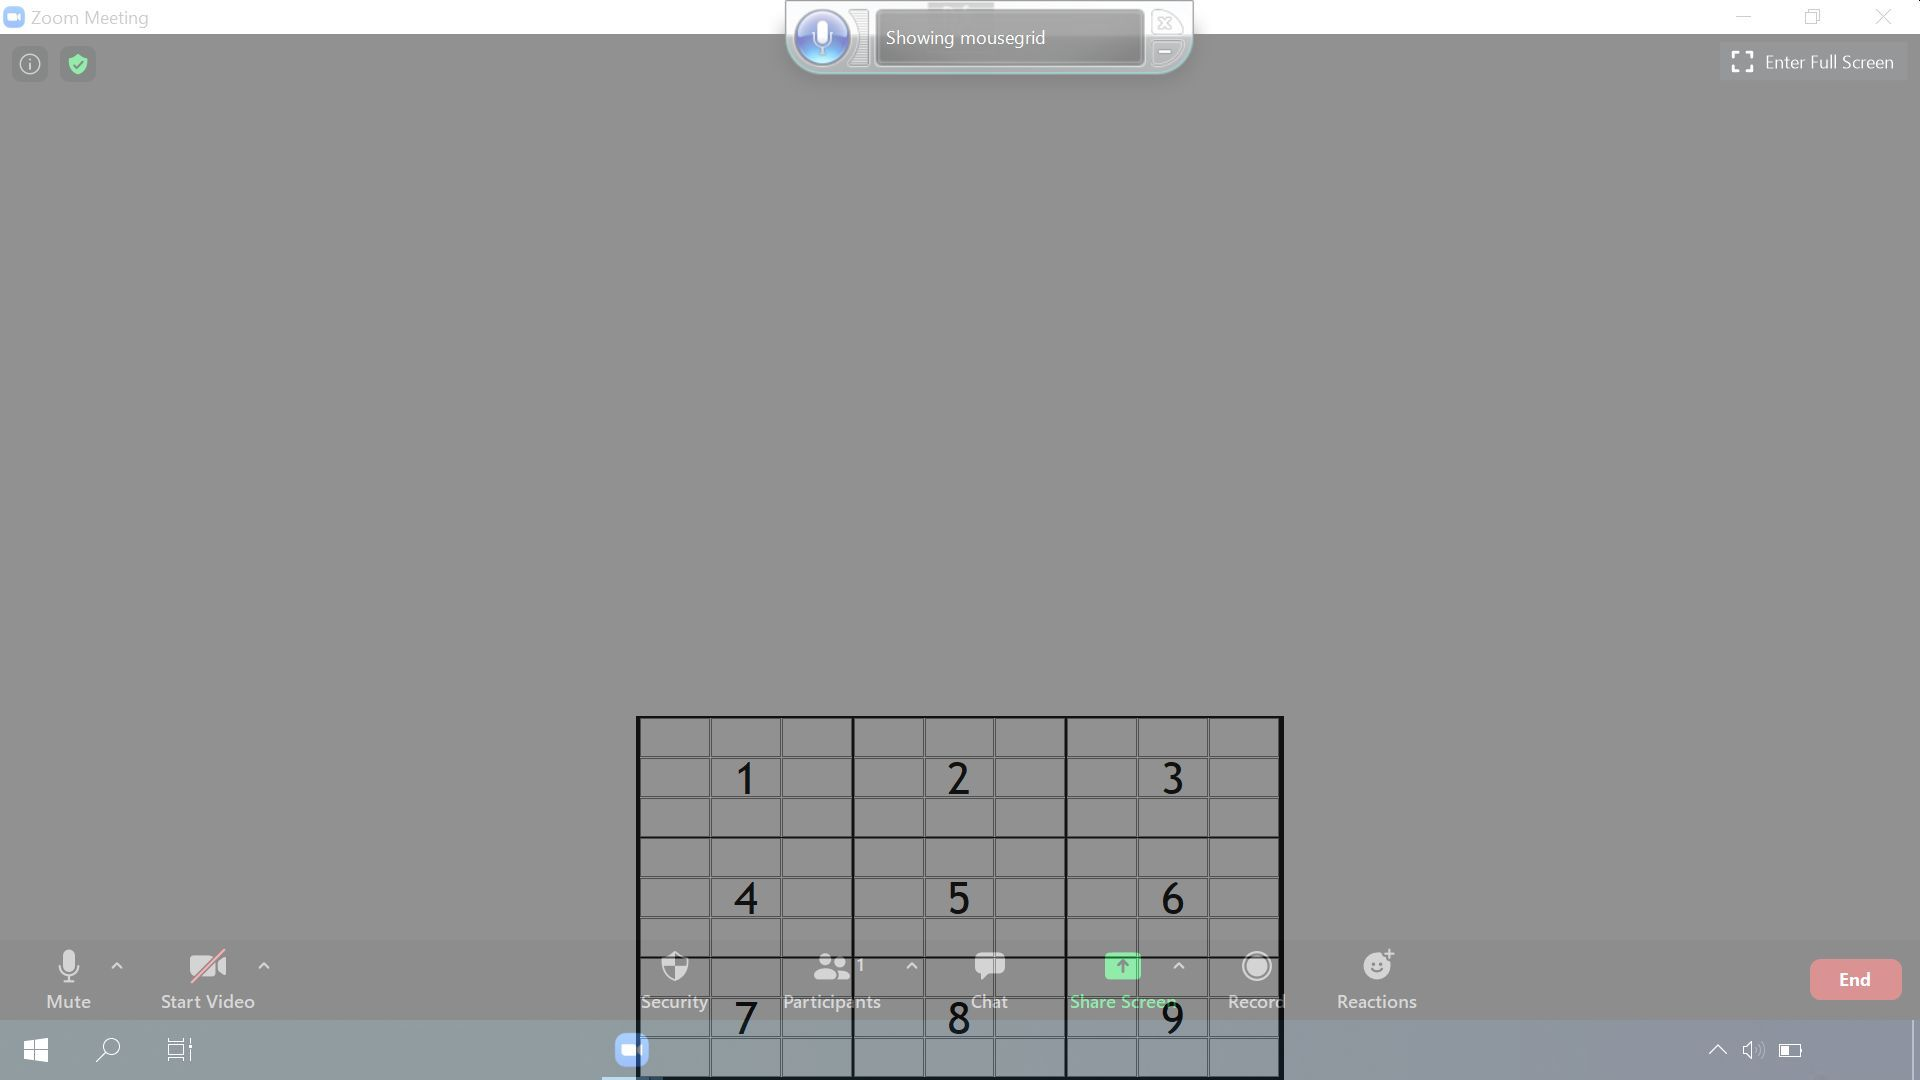 Screenshot of a smaller MouseGrid after zooming into it with voice control by selecting a grid number.